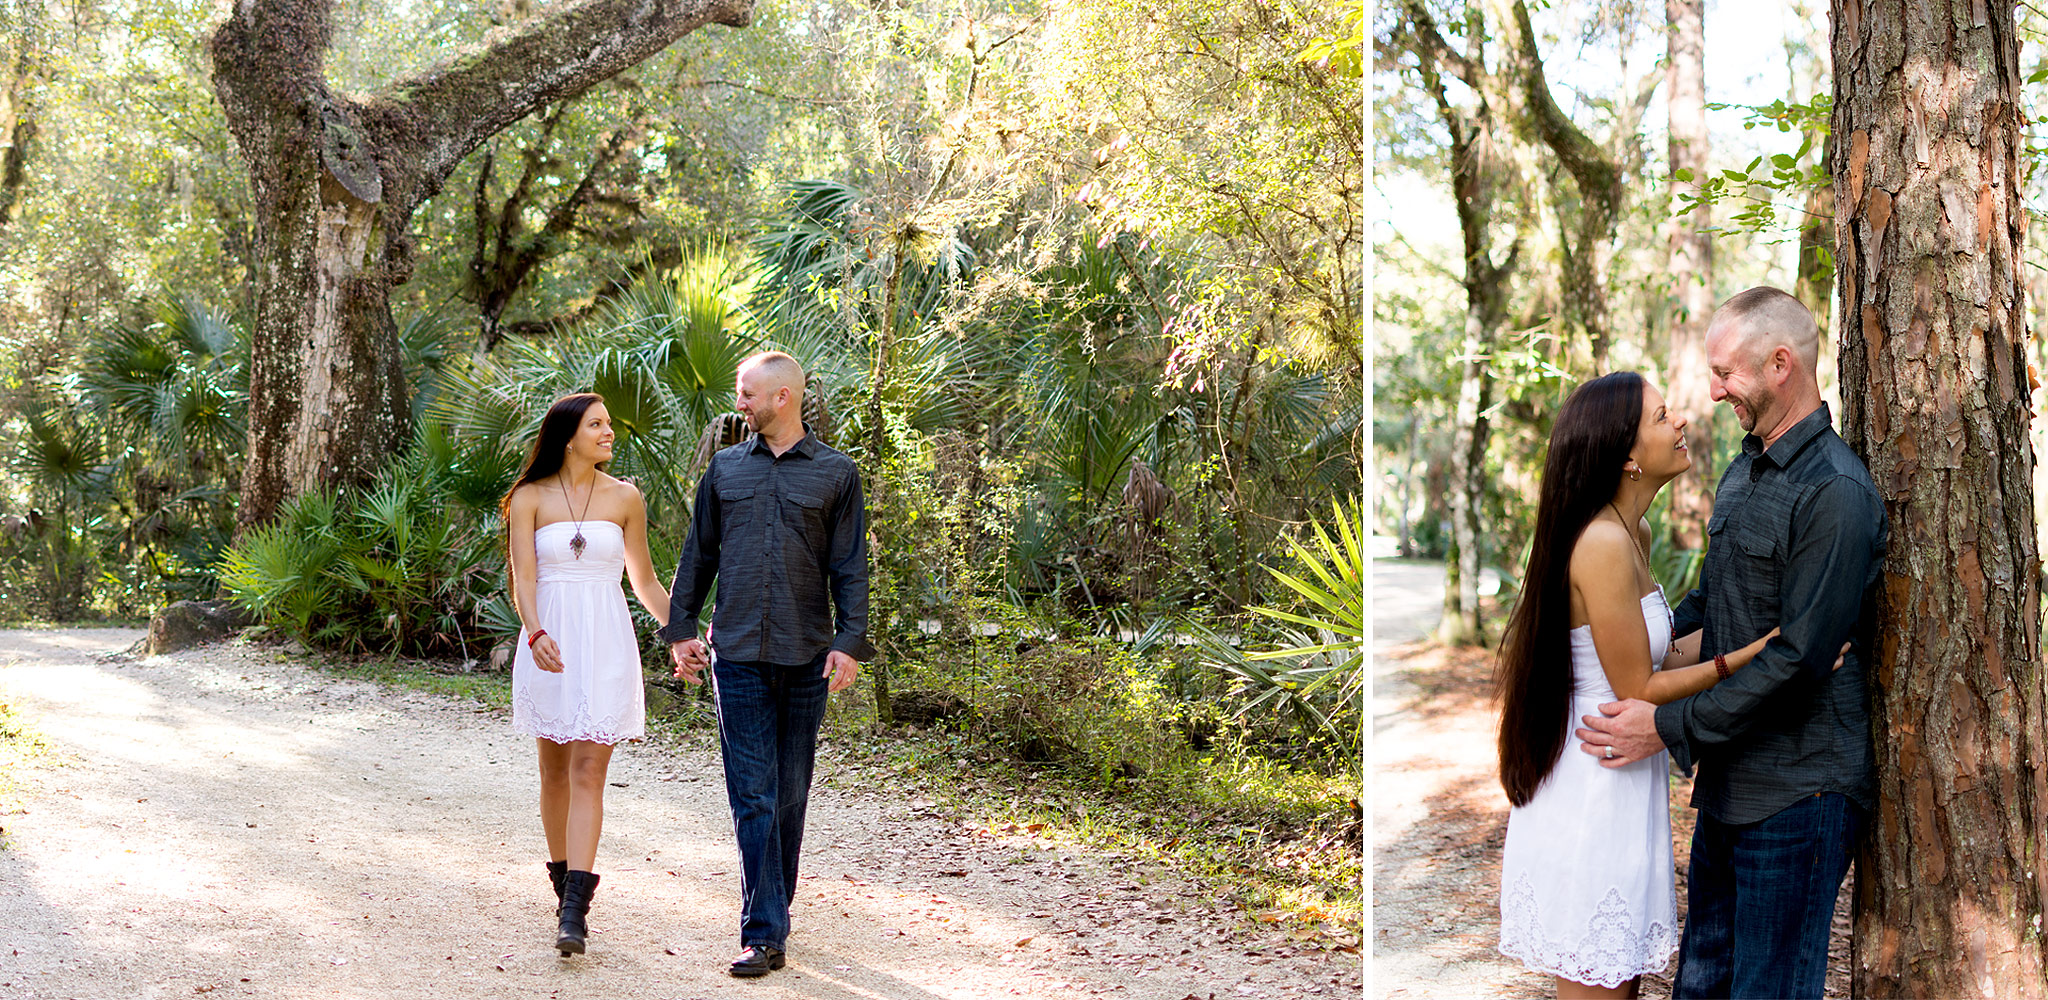 Fun couples portraits taken by Tampa photographer Carlie Chew at Lettuce Lake Park, Floria.